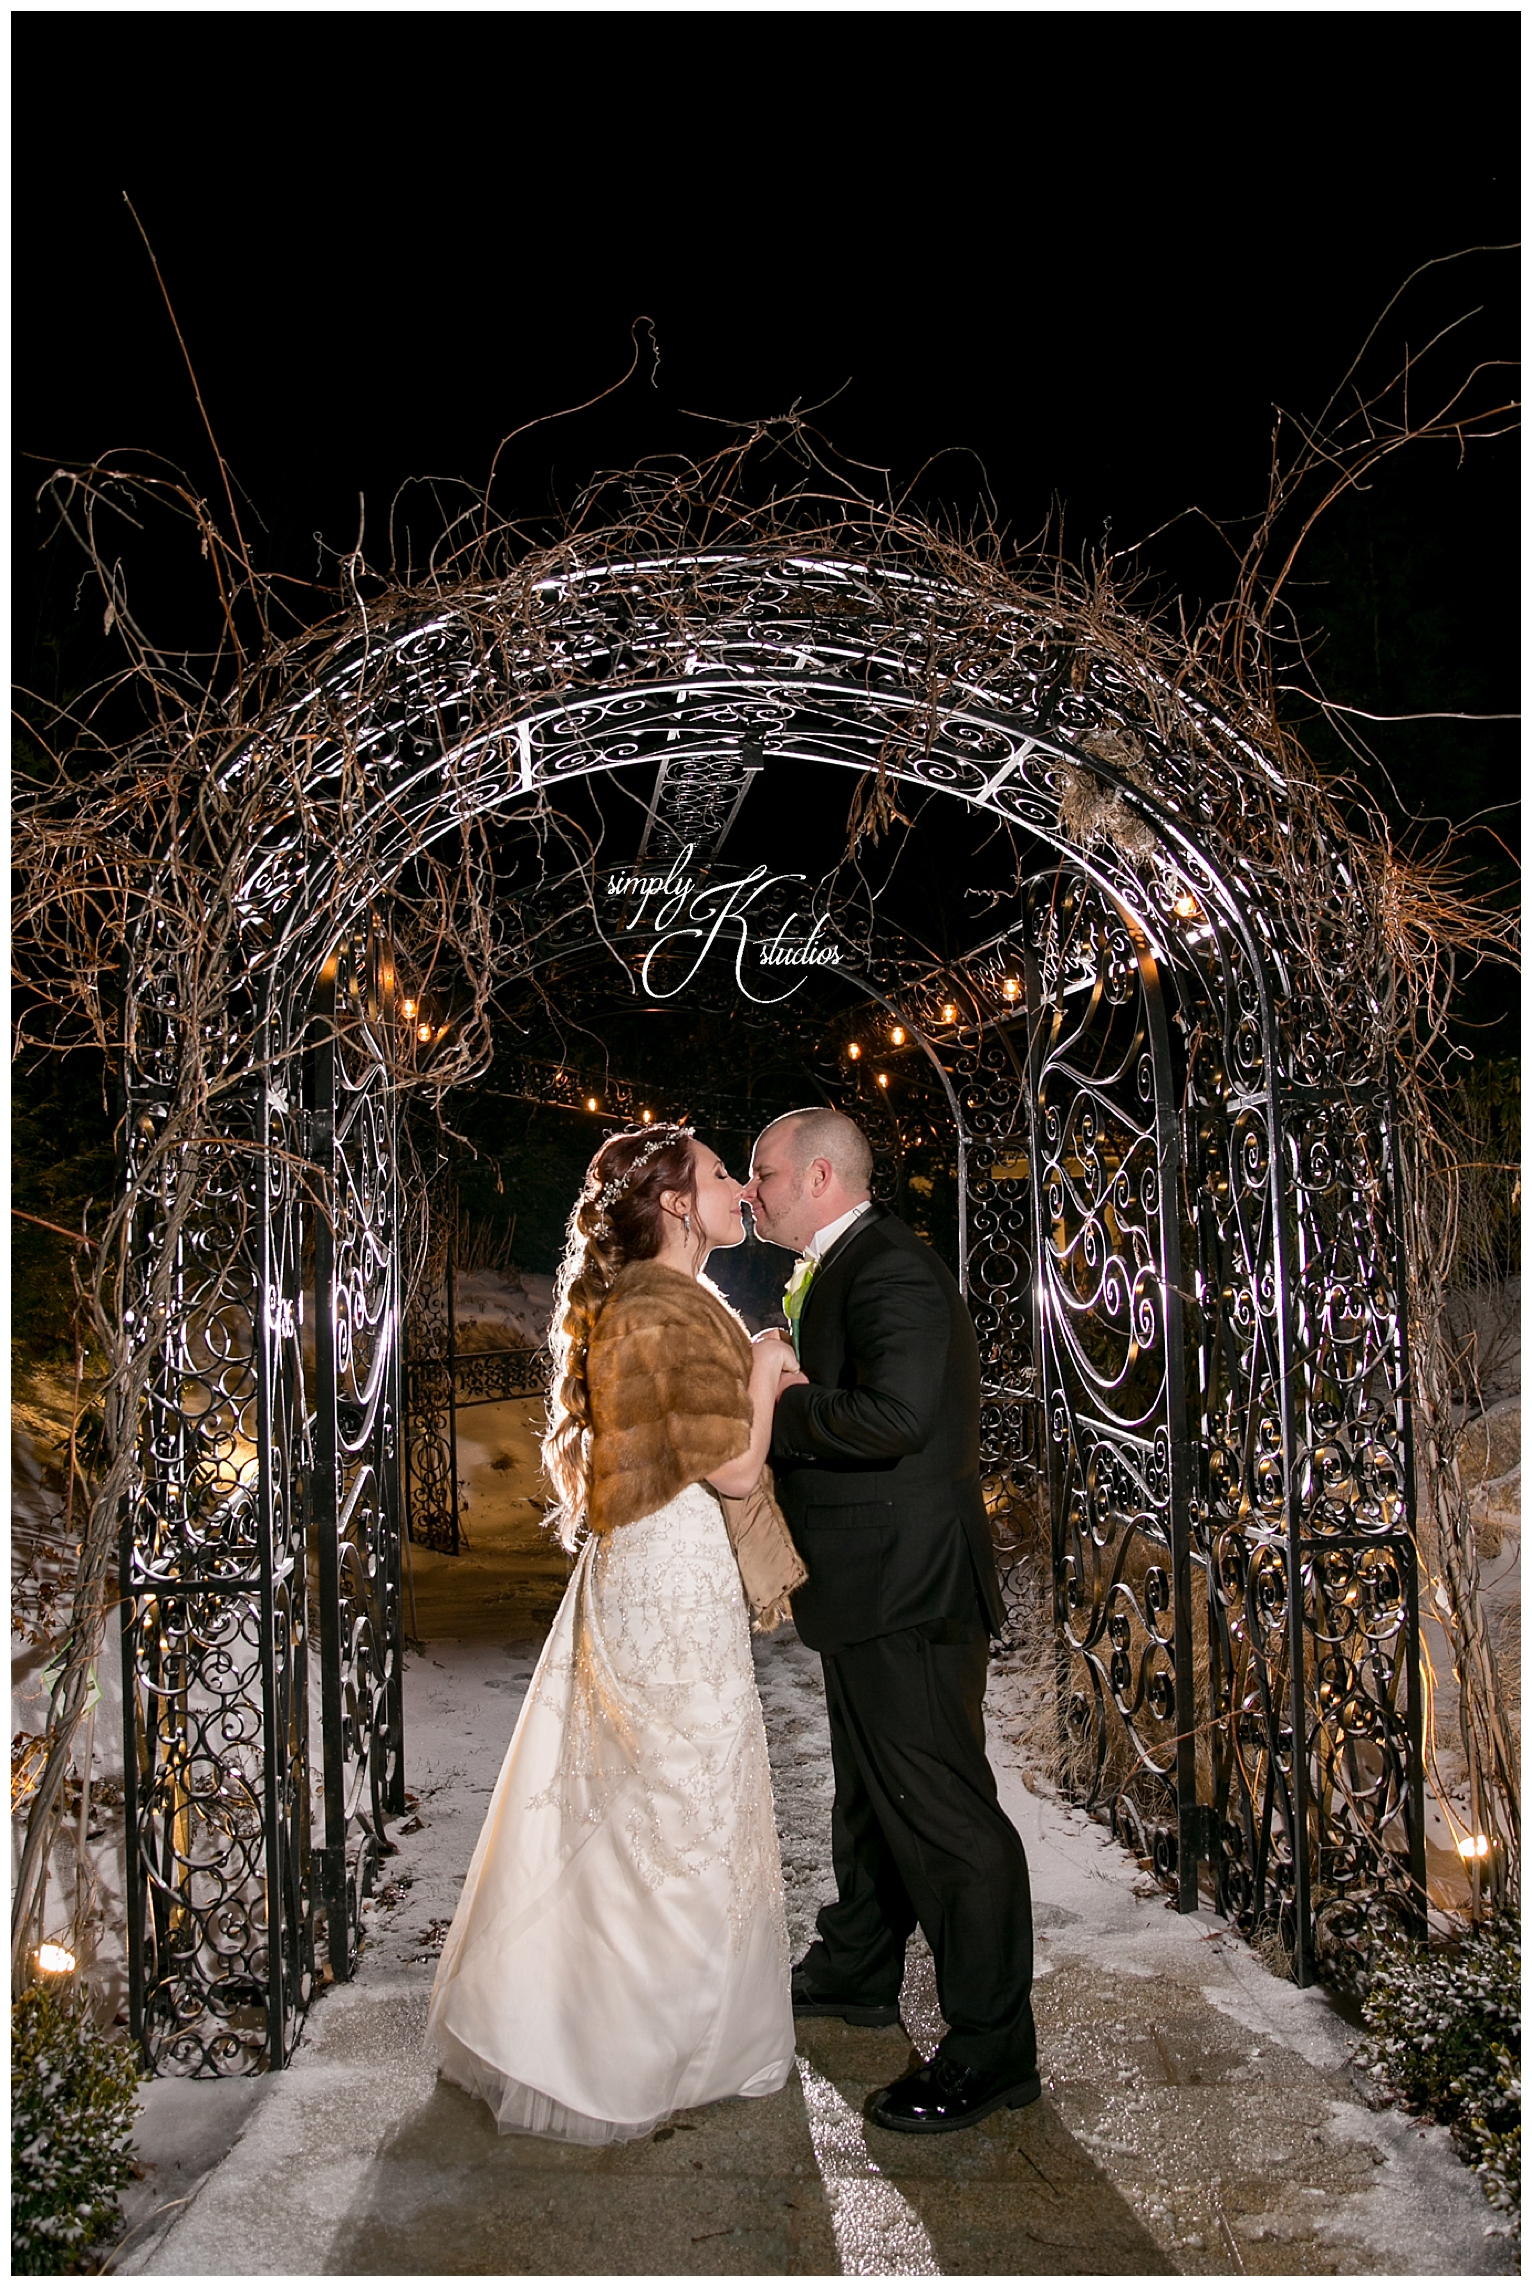 Aria winter weddings CT.jpg